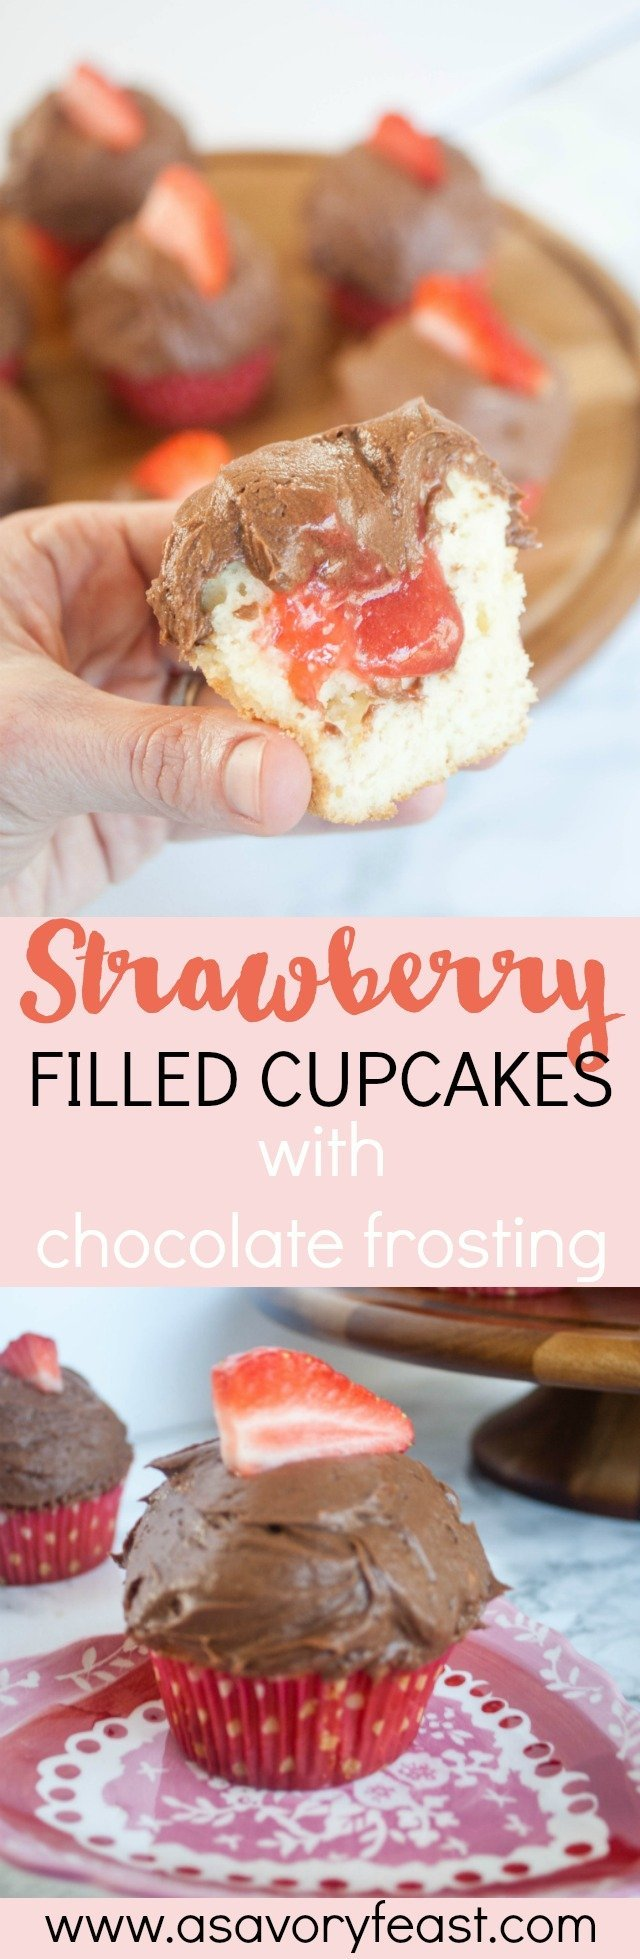 Strawberry Filled Cupcakes with Chocolate Icing are a sweet Valentine's Day dessert that is made completely from scratch! Start with a basic, homemade vanilla cupcake and fill it with a strawberry filling. Top with a simple chocolate icing! Spoil your Valentine with this sweet treat. #valentinesday #valentinesdessert #cupcakes #valentinesdayfood